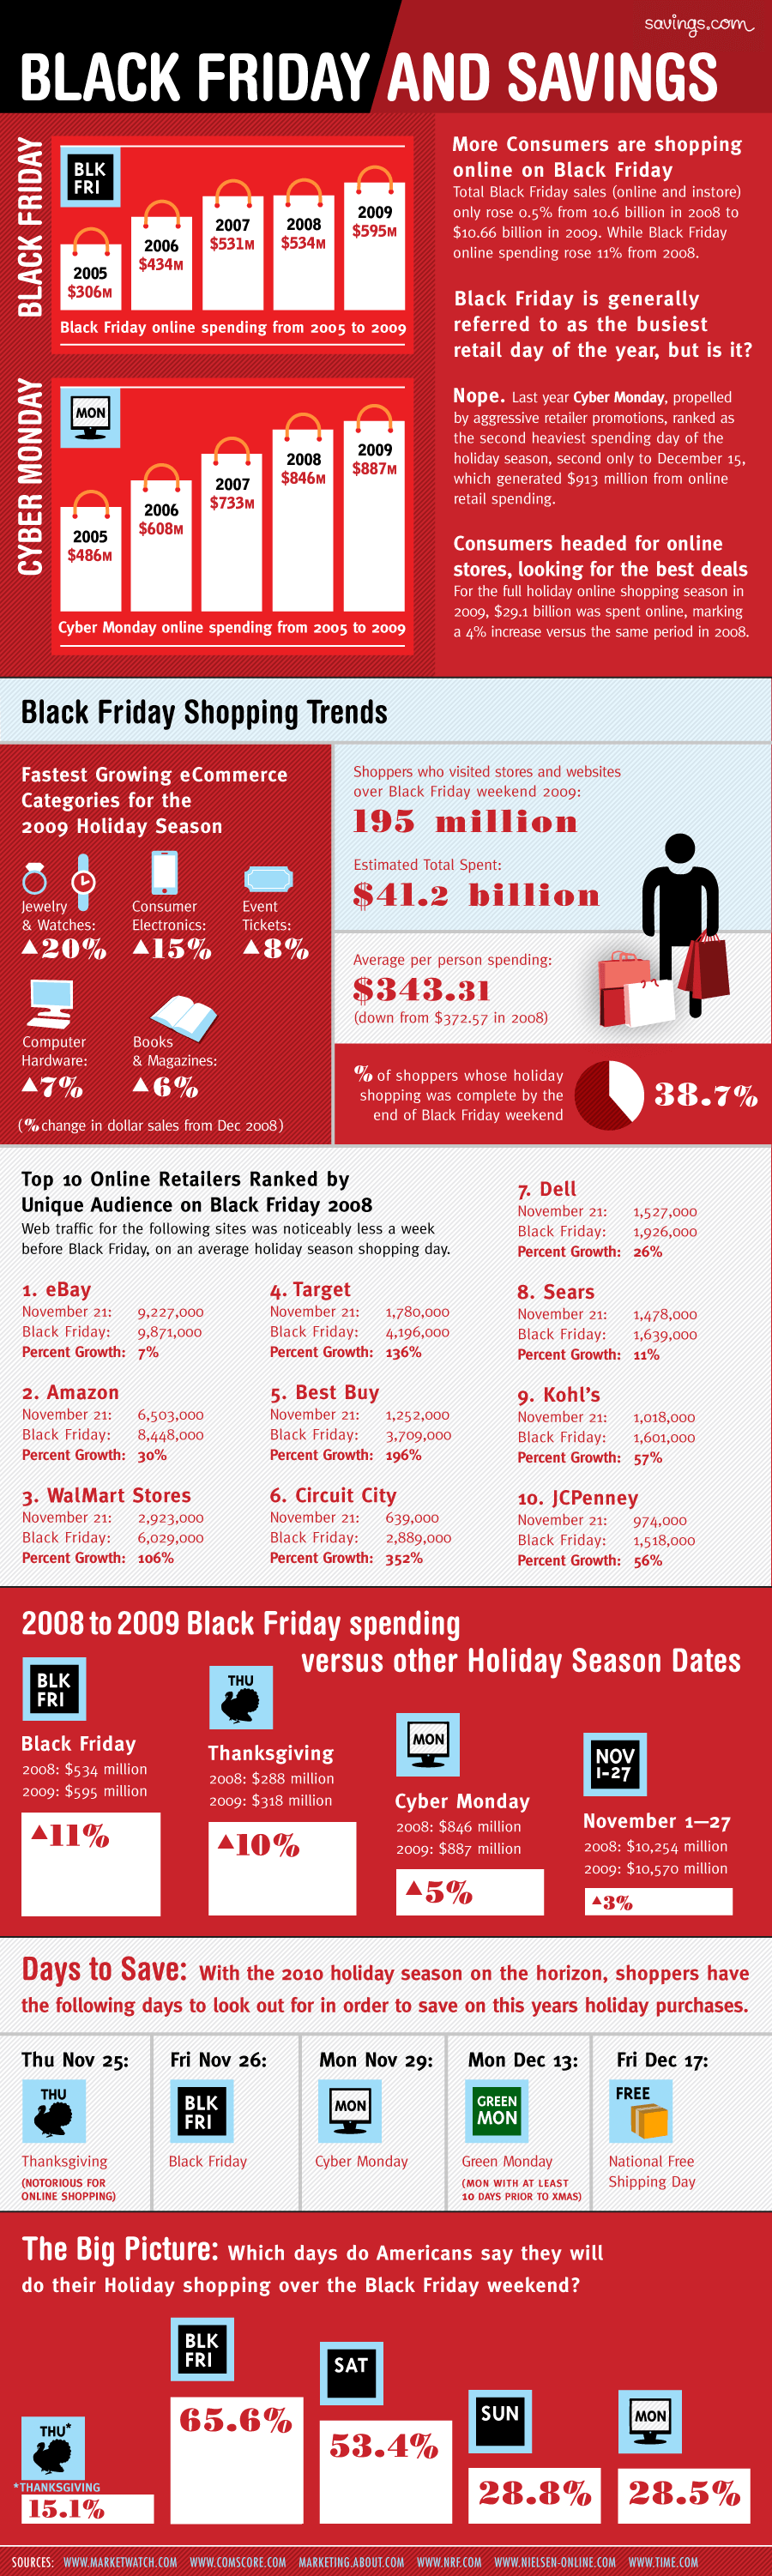 Black Friday Infographic Black Friday: o fenômeno do E Commerce em infográficos